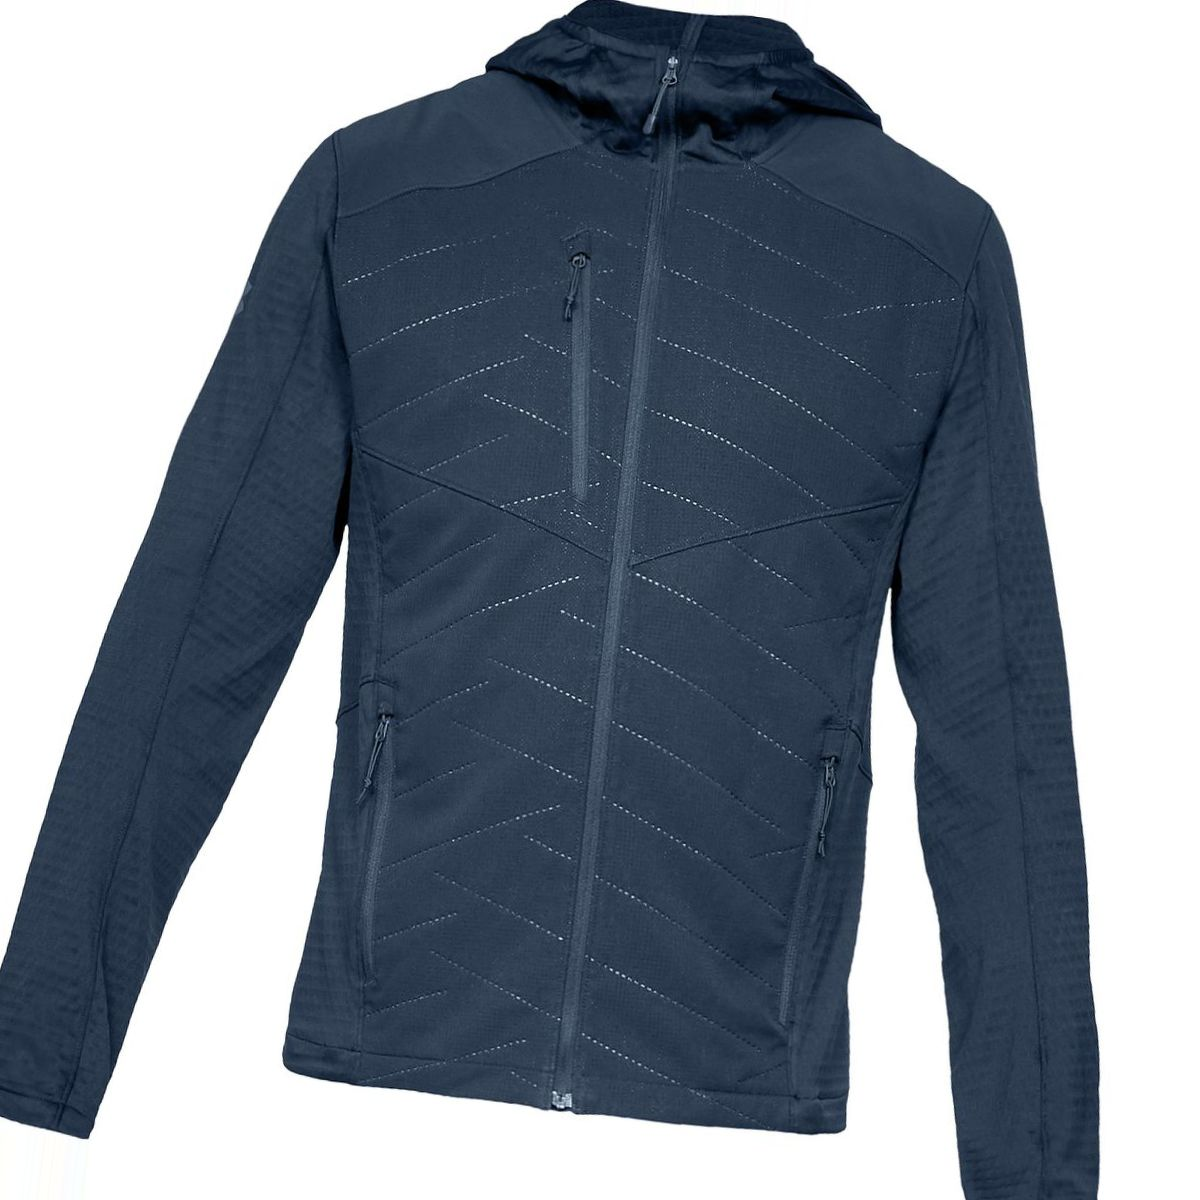 Under Armour Coldgear Reactor Exert Jacket - Men's